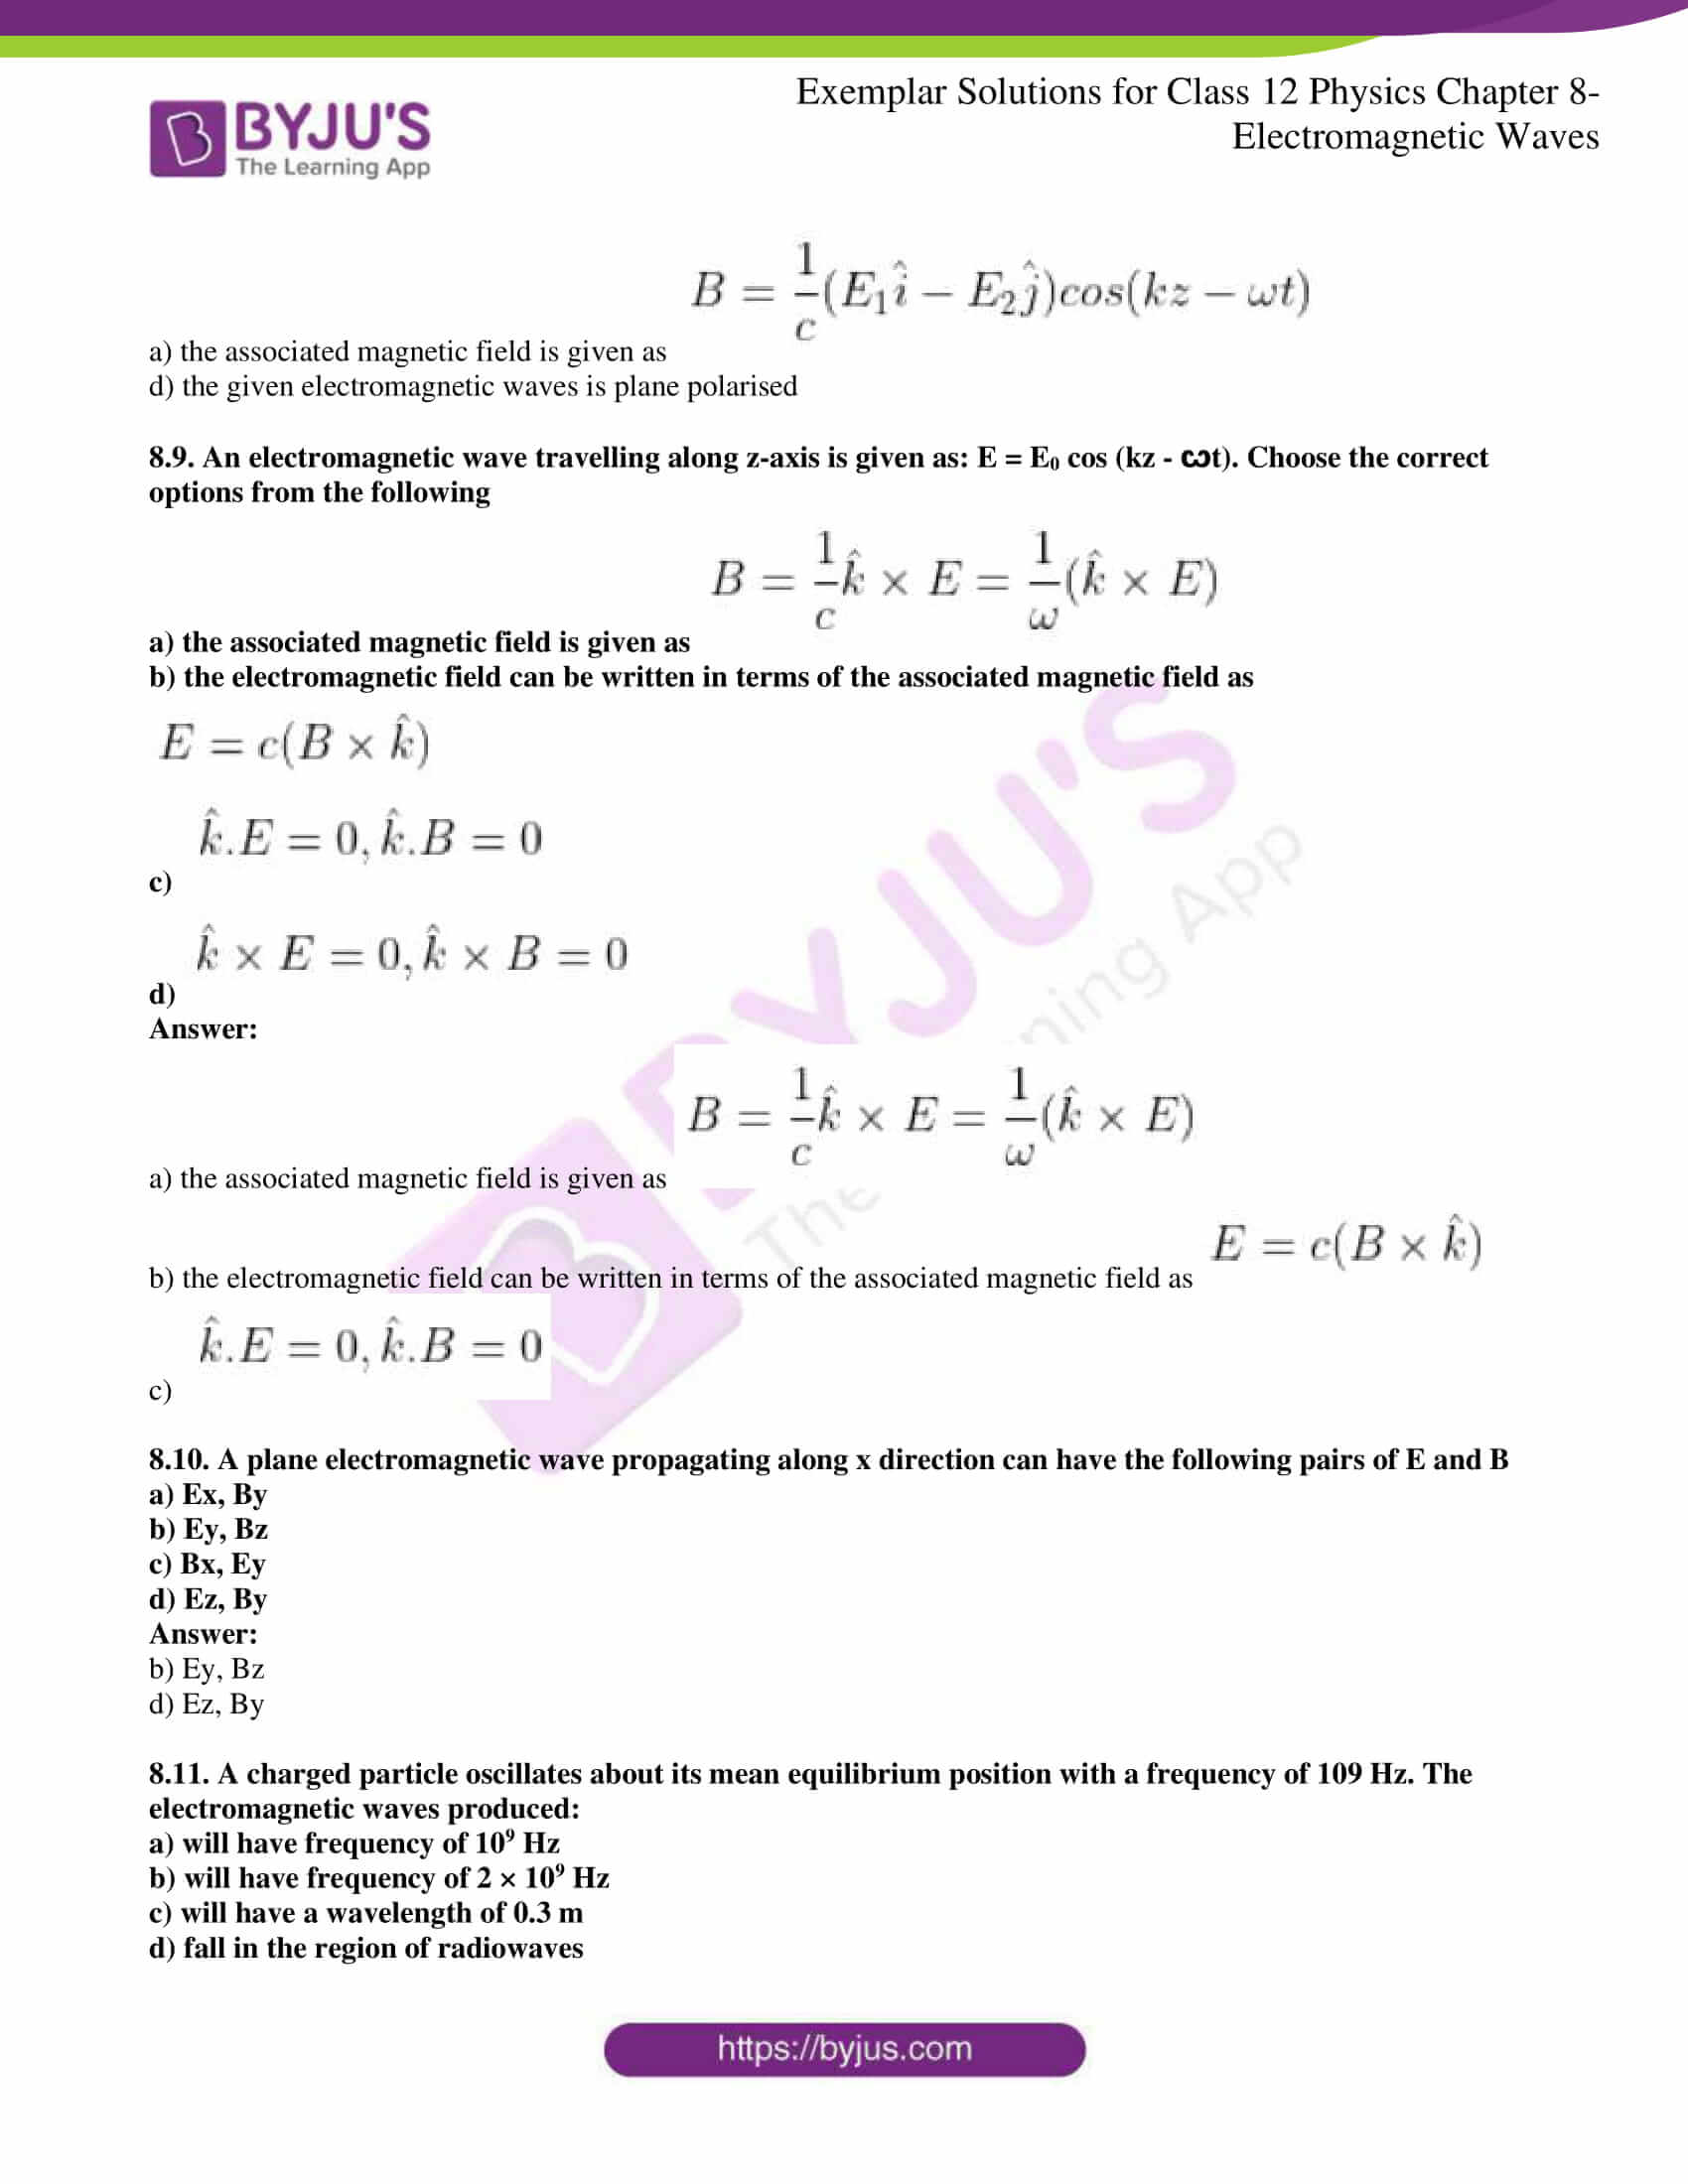 ncert exemplar solutions for class 12 physics chapter 8 03